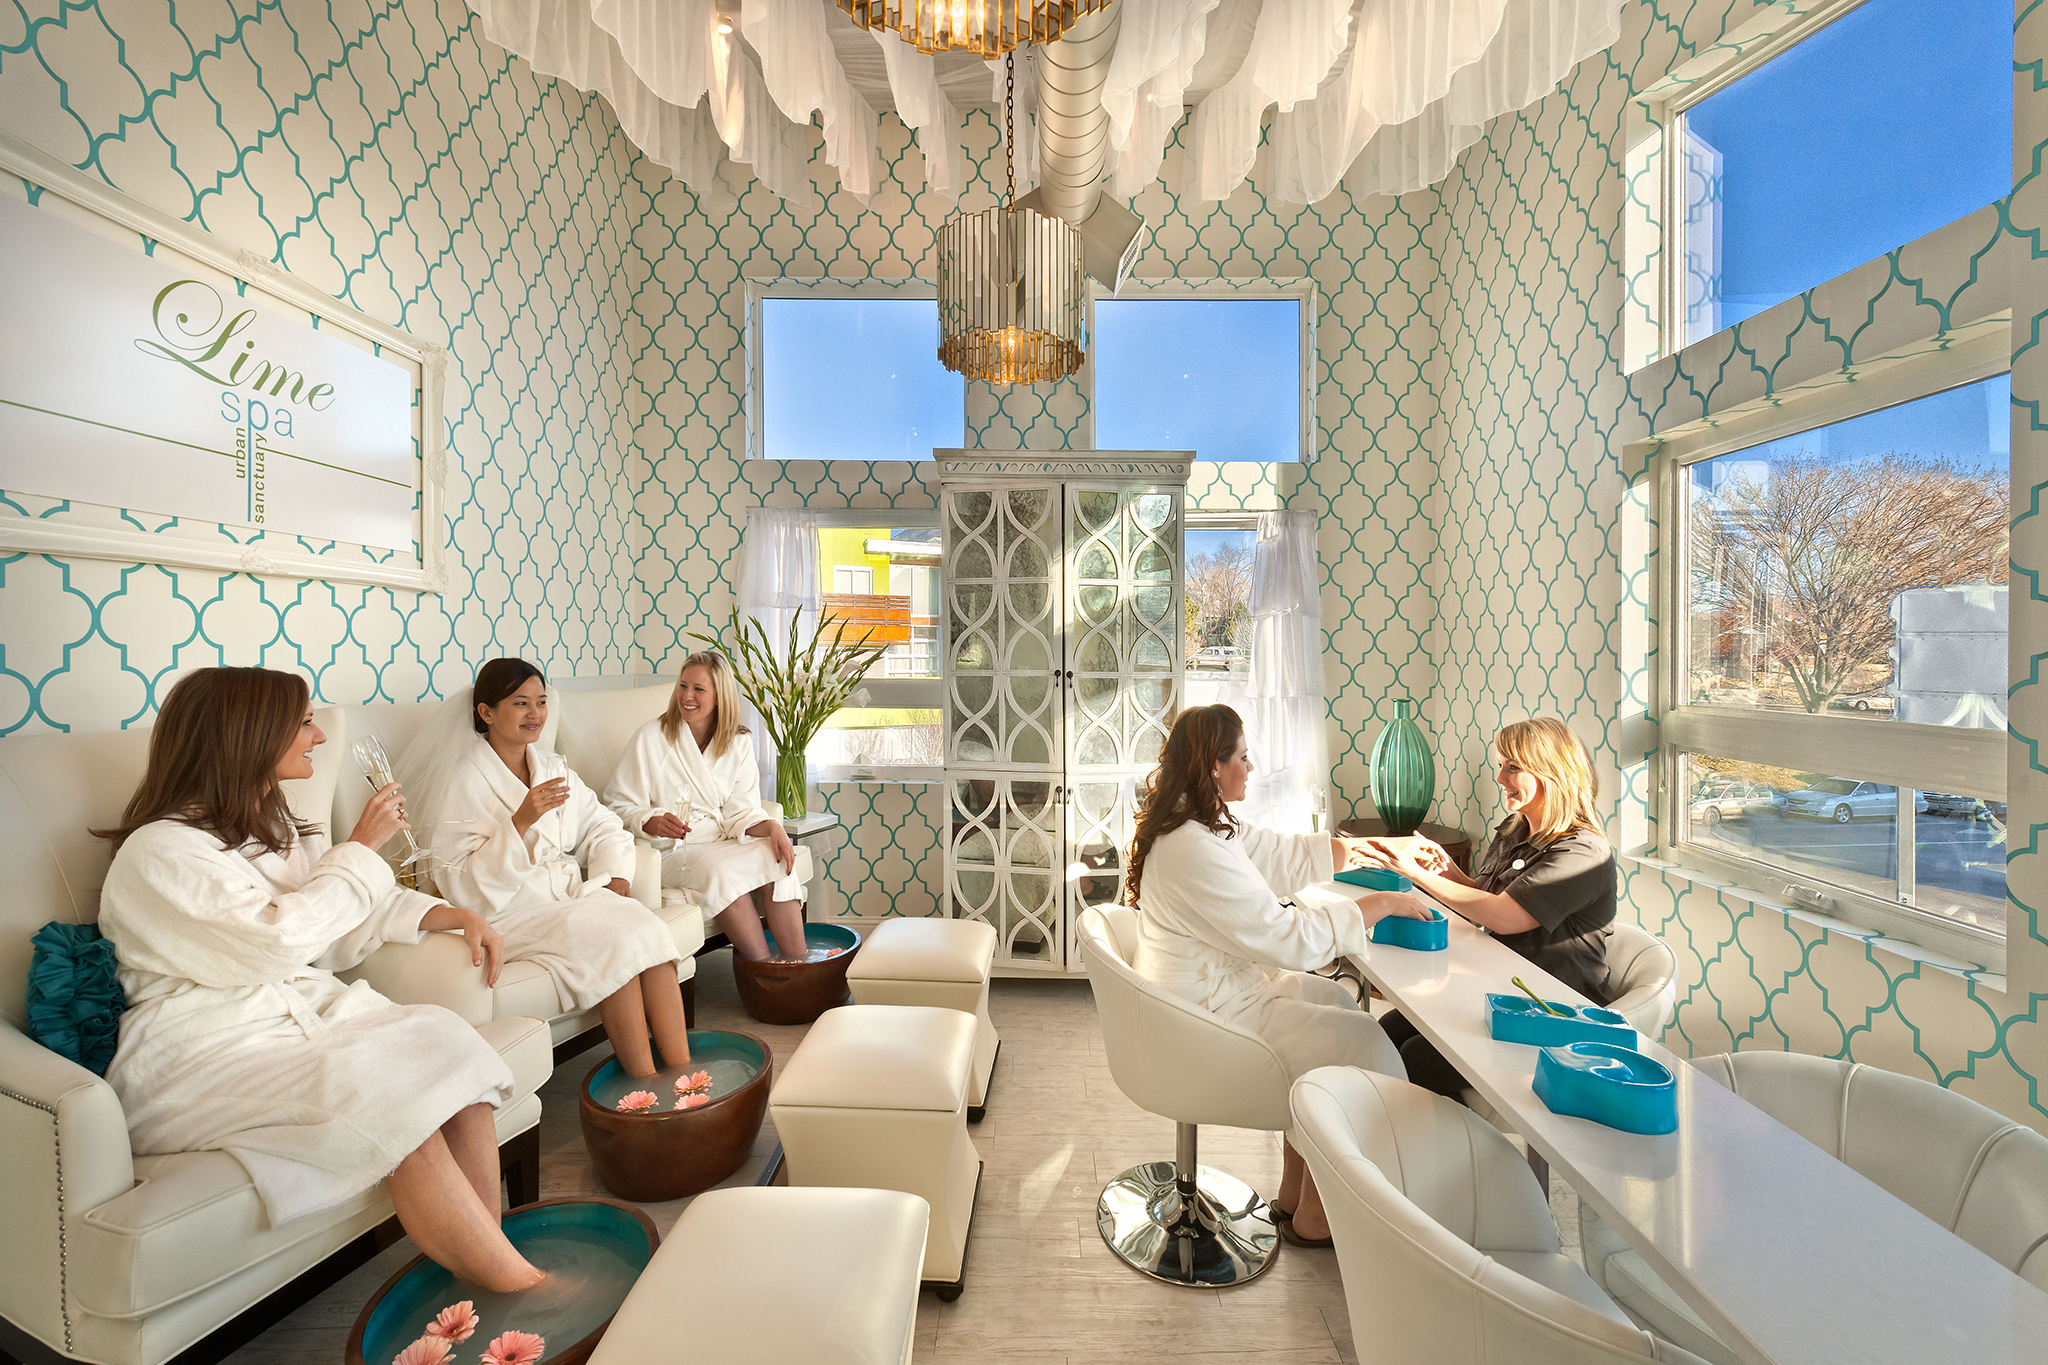 Best day spas and spa resorts in america for Best spa vacations usa